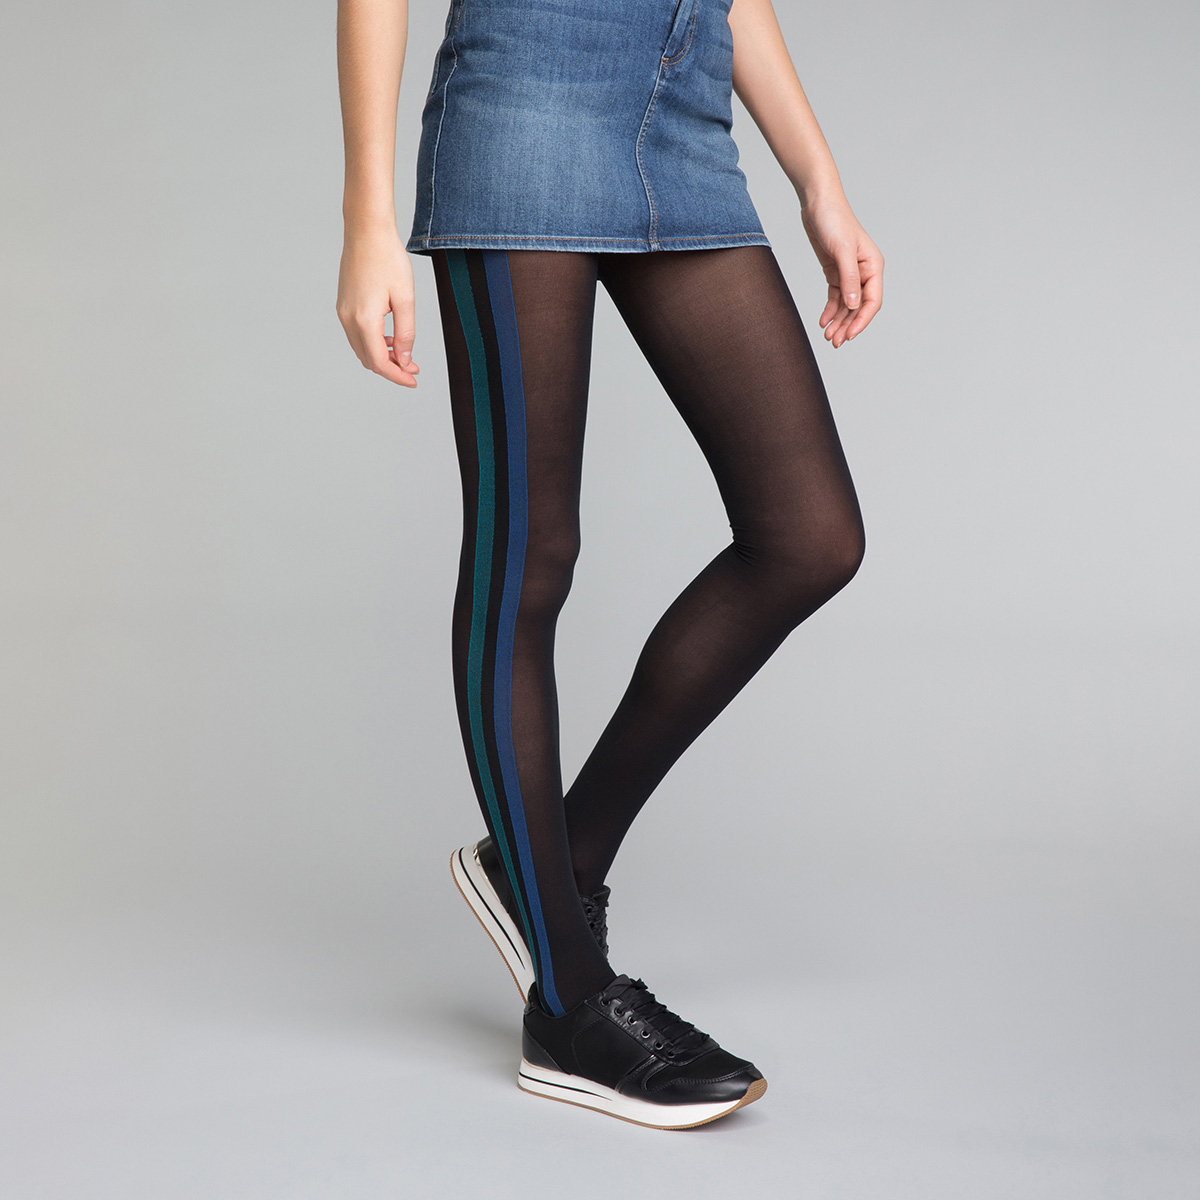 49563e11a Black and Blue Sporty Look 40 Tights - DIM Style, ...